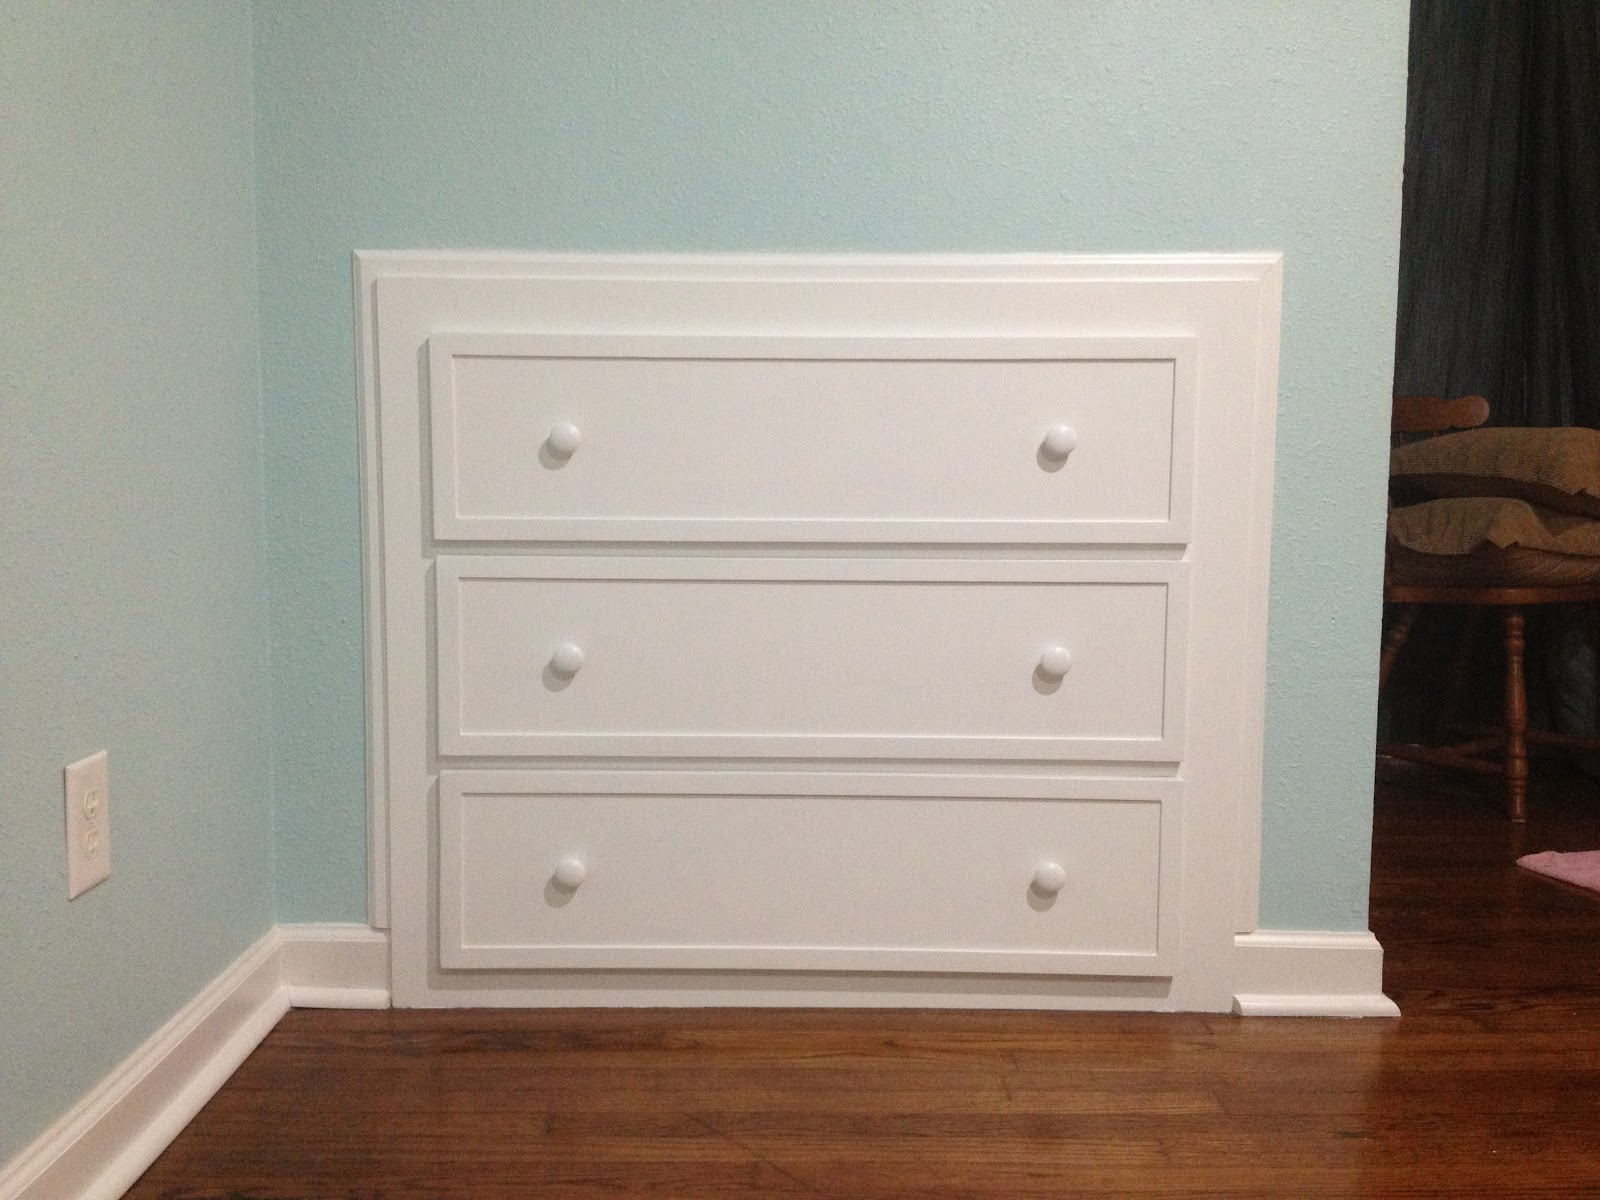 How To Build Dresser Into Wall